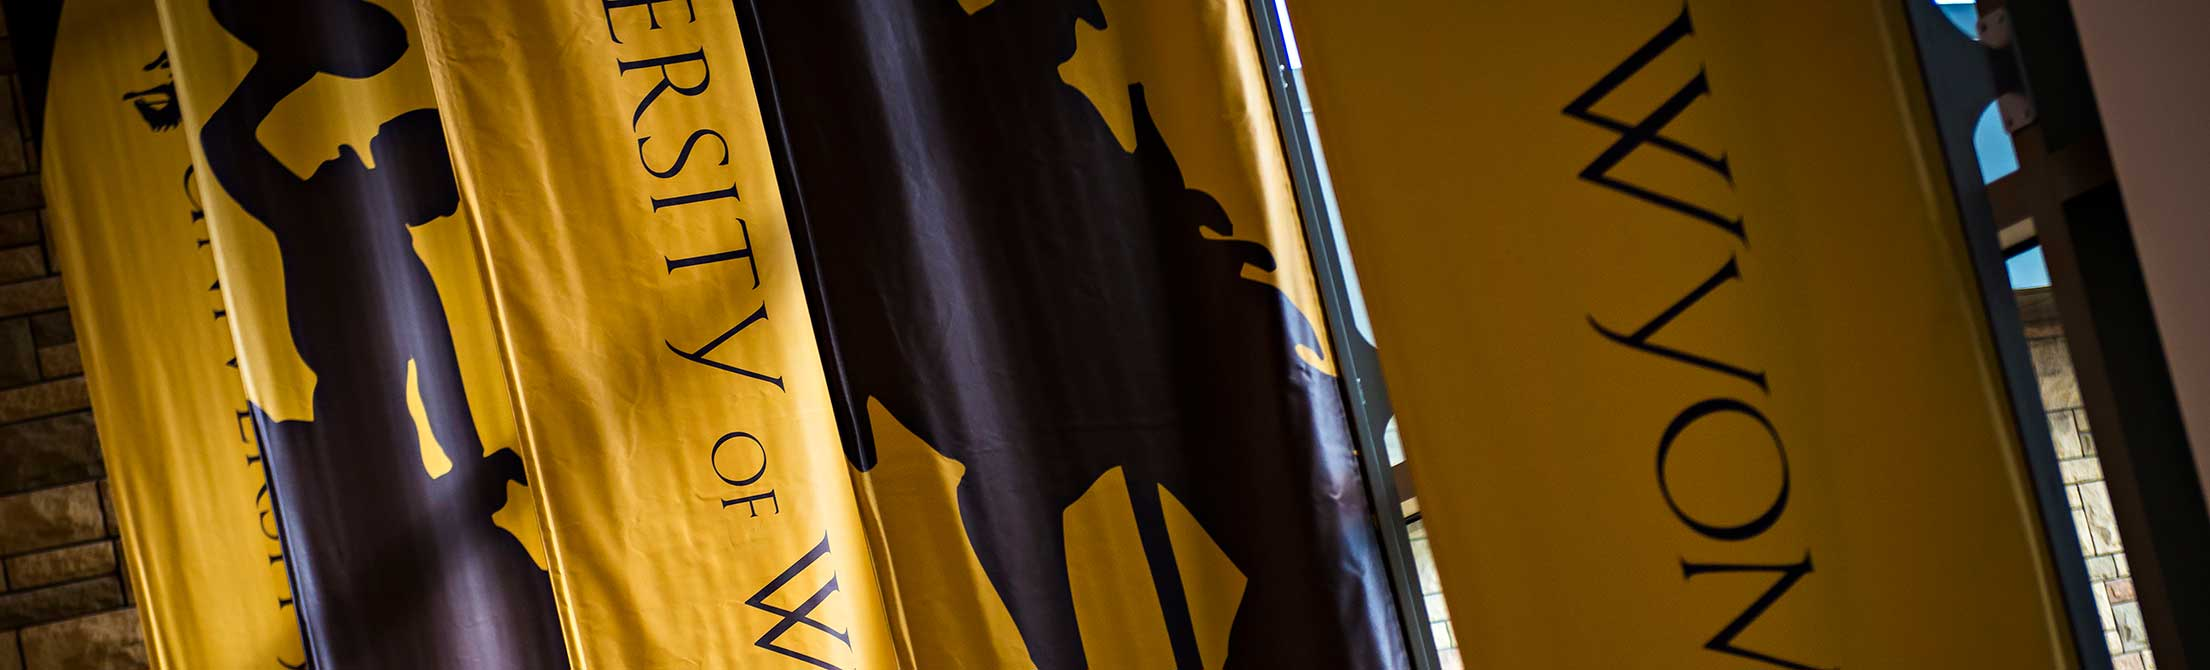 University of Wyoming banners hanging in the Marian H. Rochelle Gateway Center